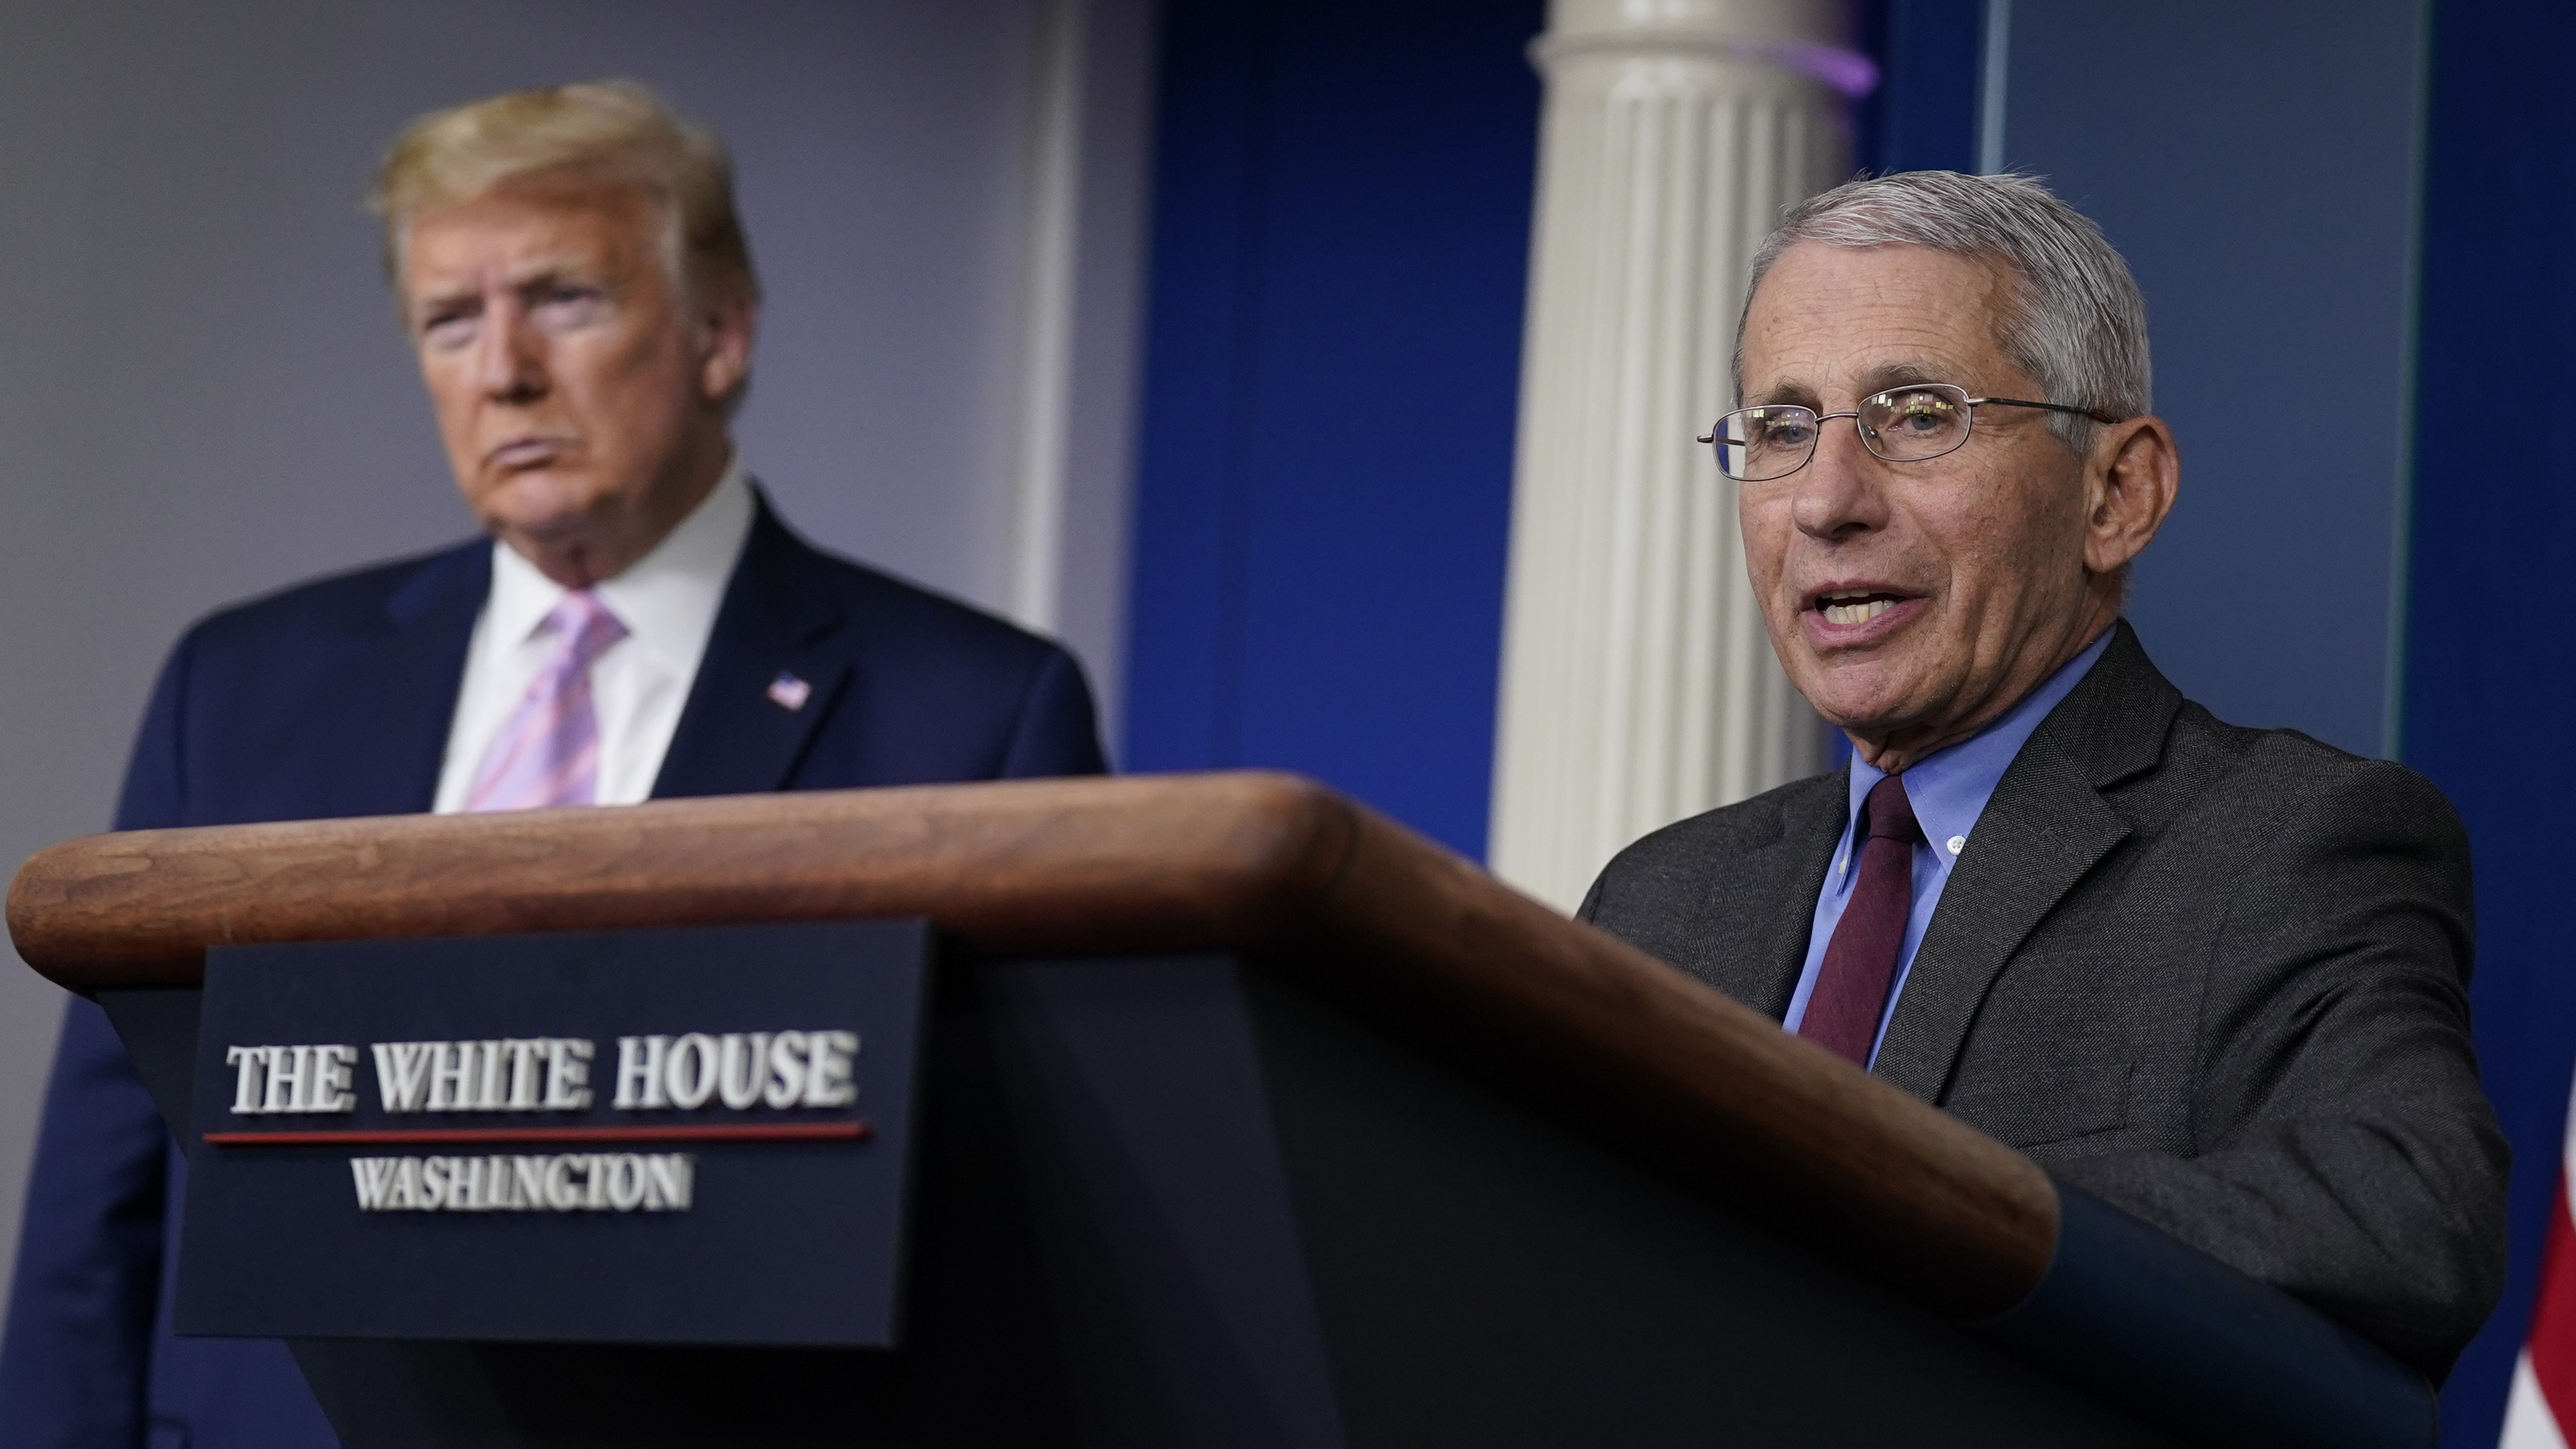 WATCH: Dr. Fauci says he has not been involved in Trump's coronavirus treatment